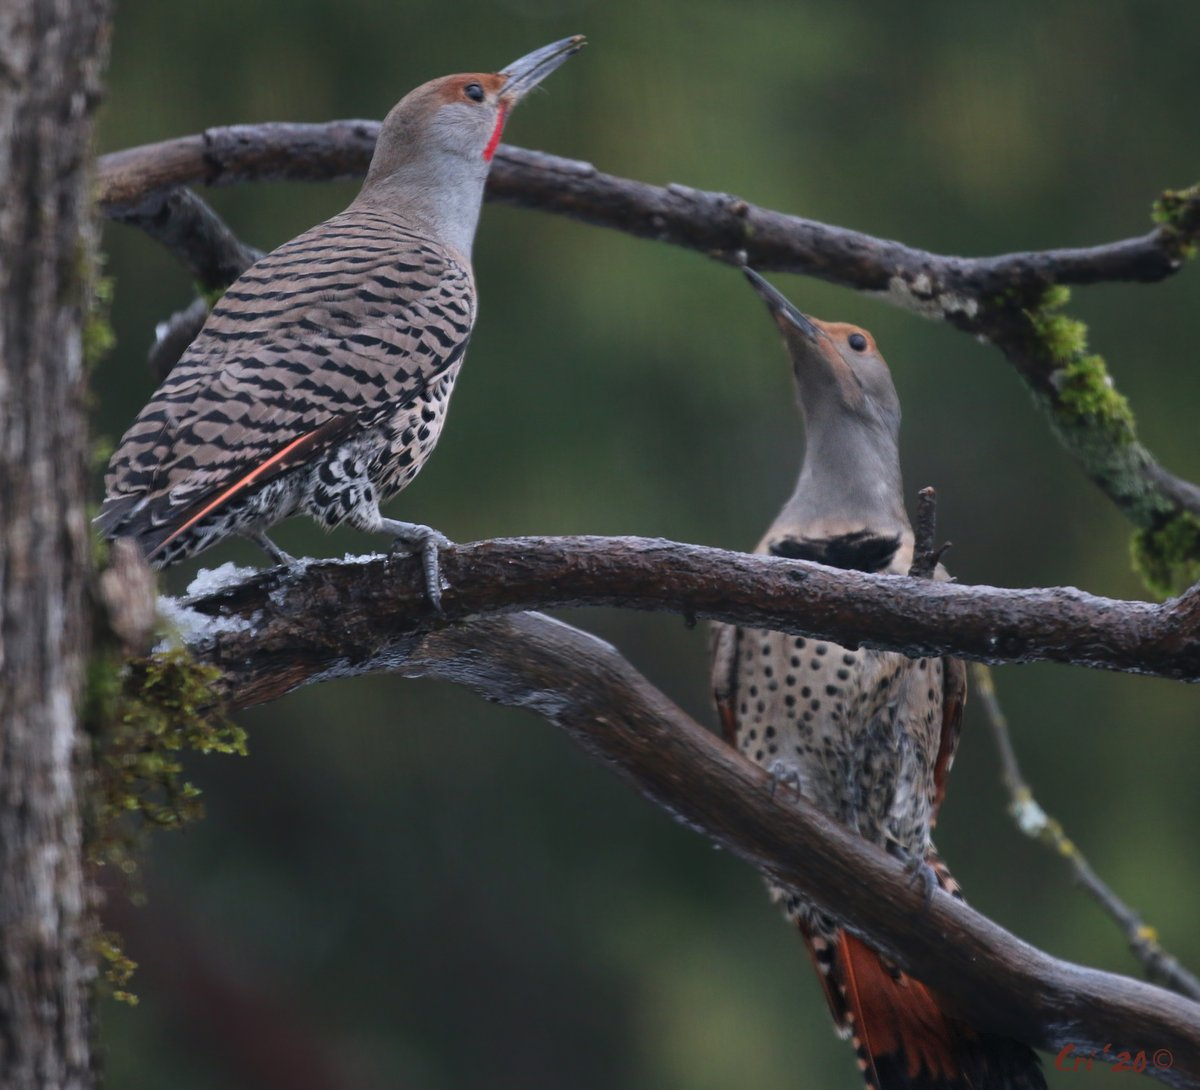 #Click4Full - worth it  Flicker Wars!  Mr. Northern Flicker found the suet & Ms. Flicker would like him to know he can F the F off and find his own F-ing suet source!  #becurious #BeKind<br>http://pic.twitter.com/wdlPa4P8mO